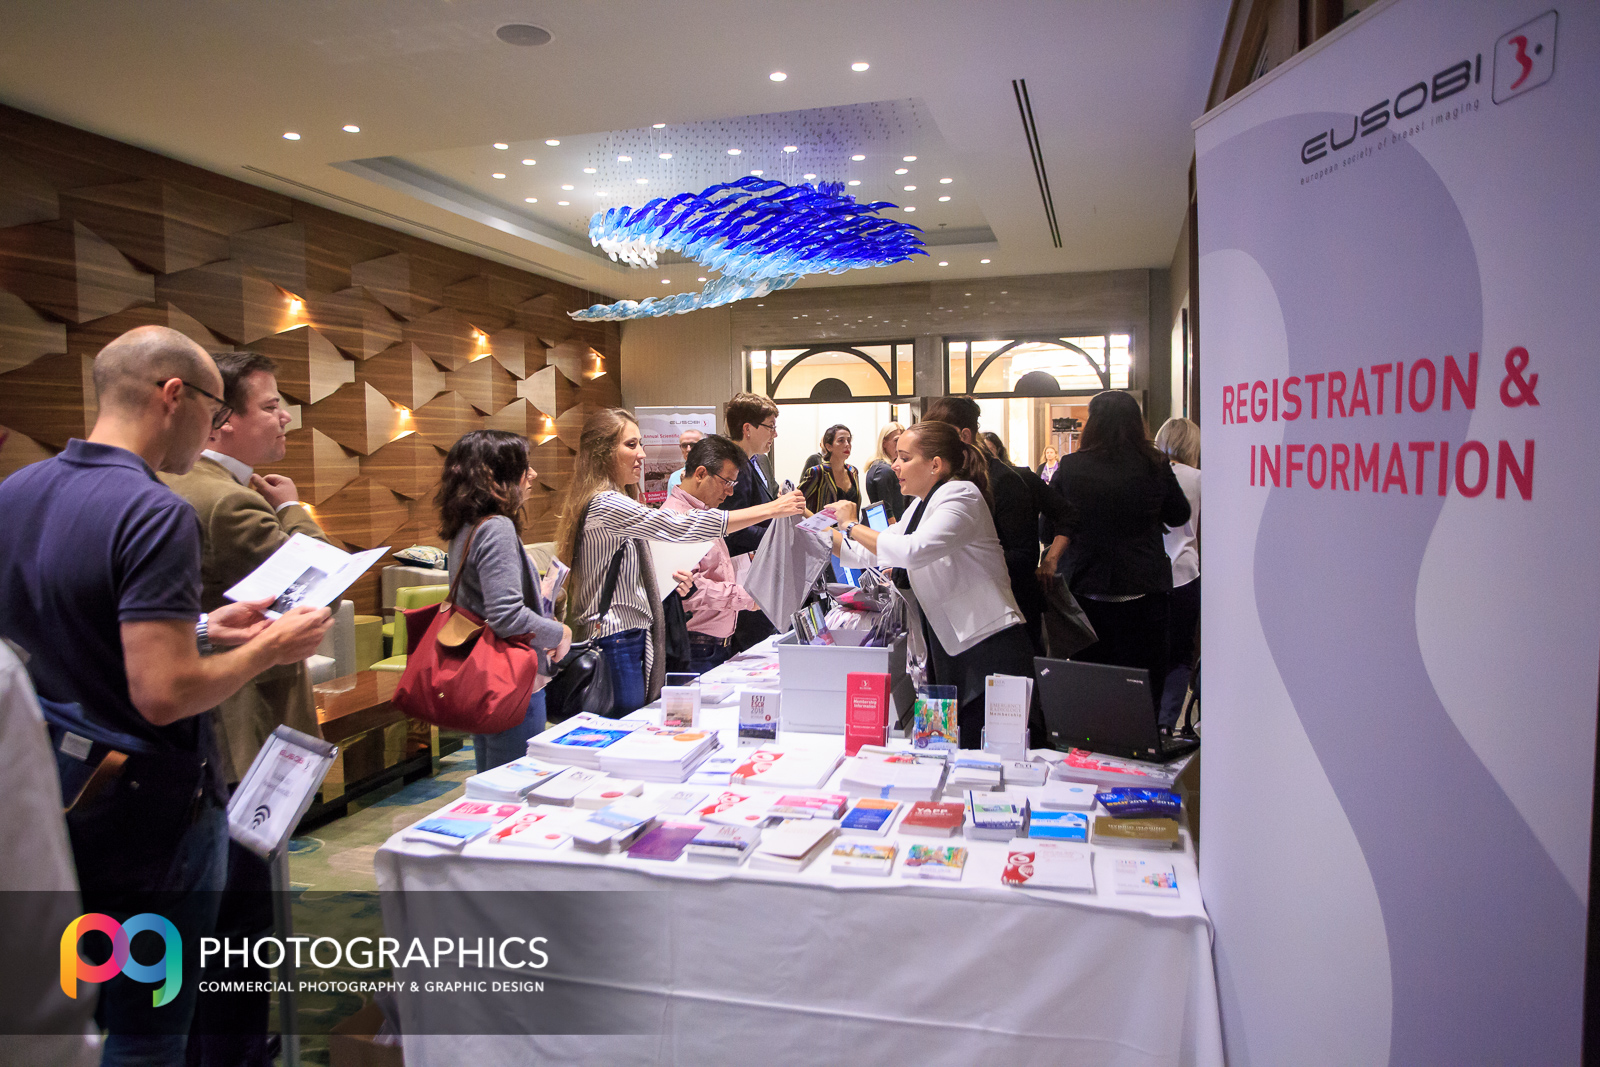 conference-event-photography-edinburgh-glasgow-berlin-3.jpg